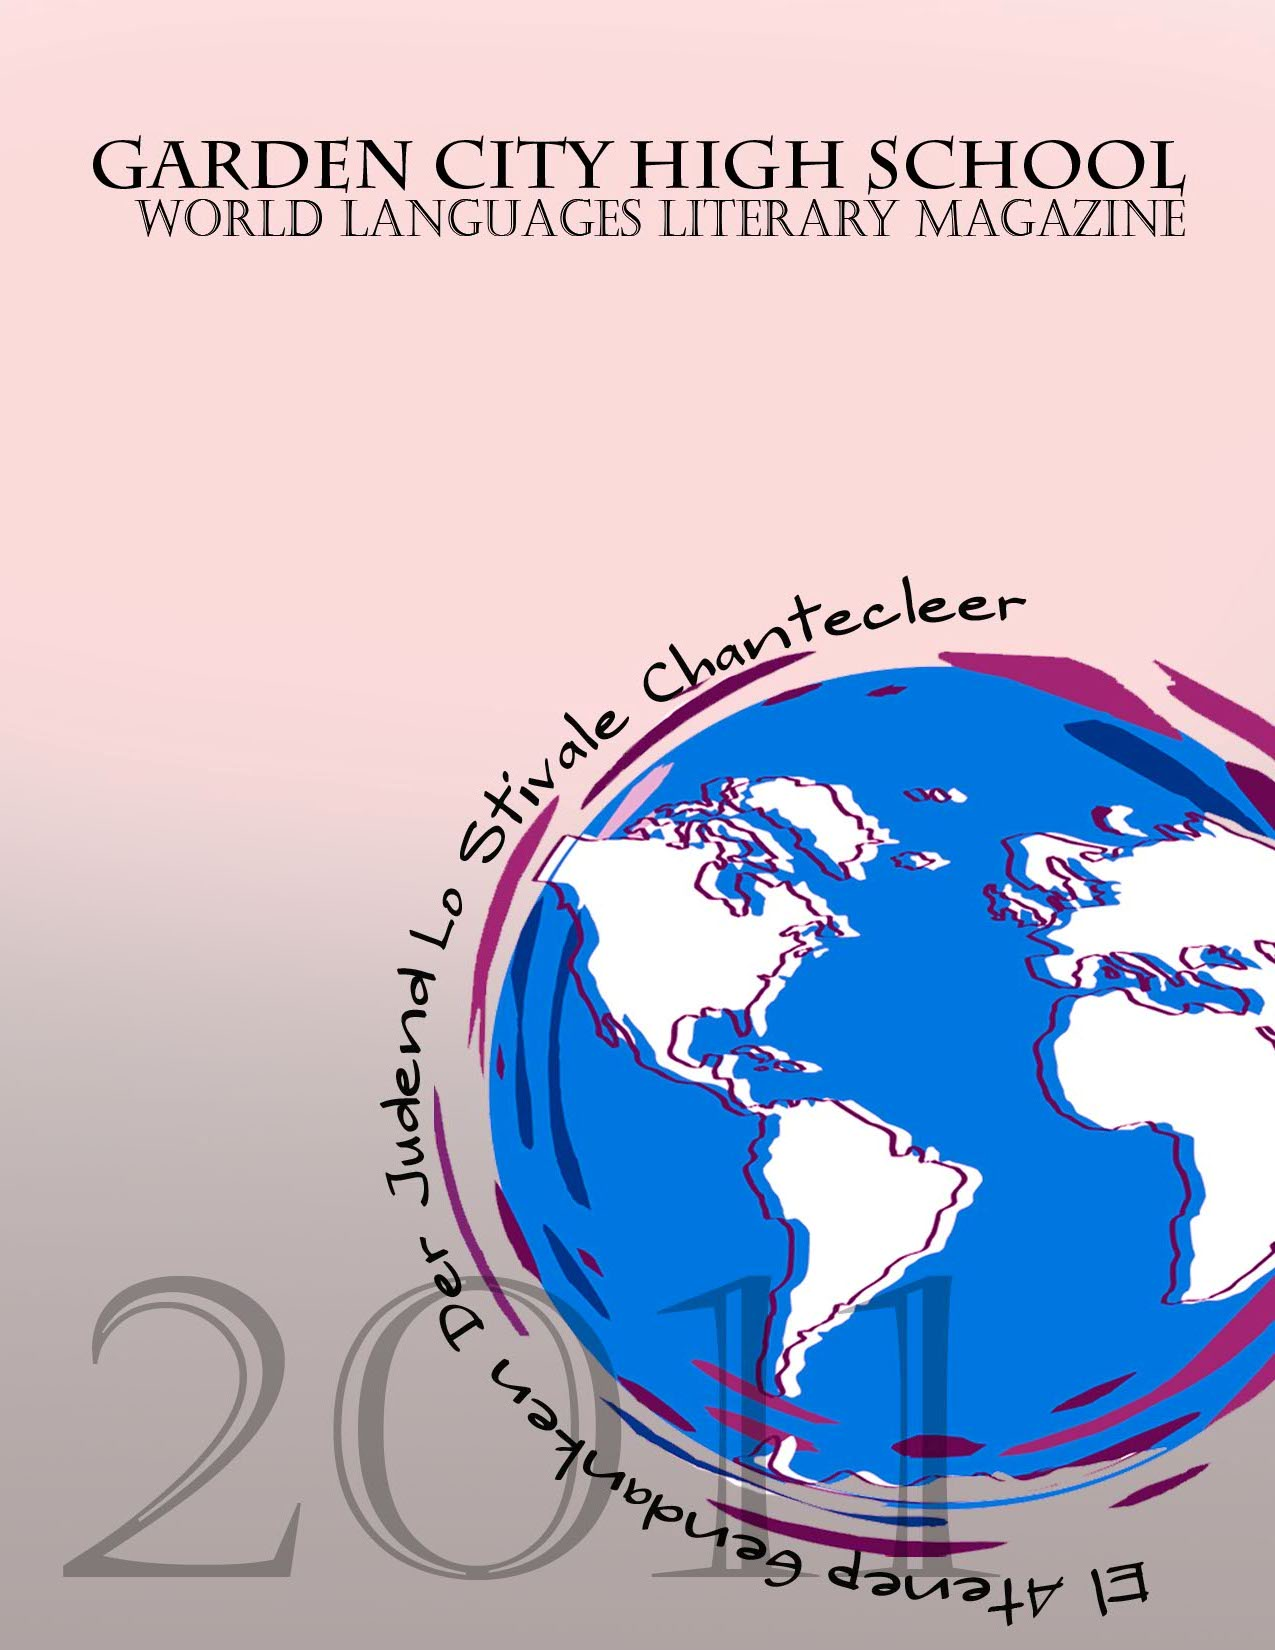 Garden City High School World Languages Literary Magazine